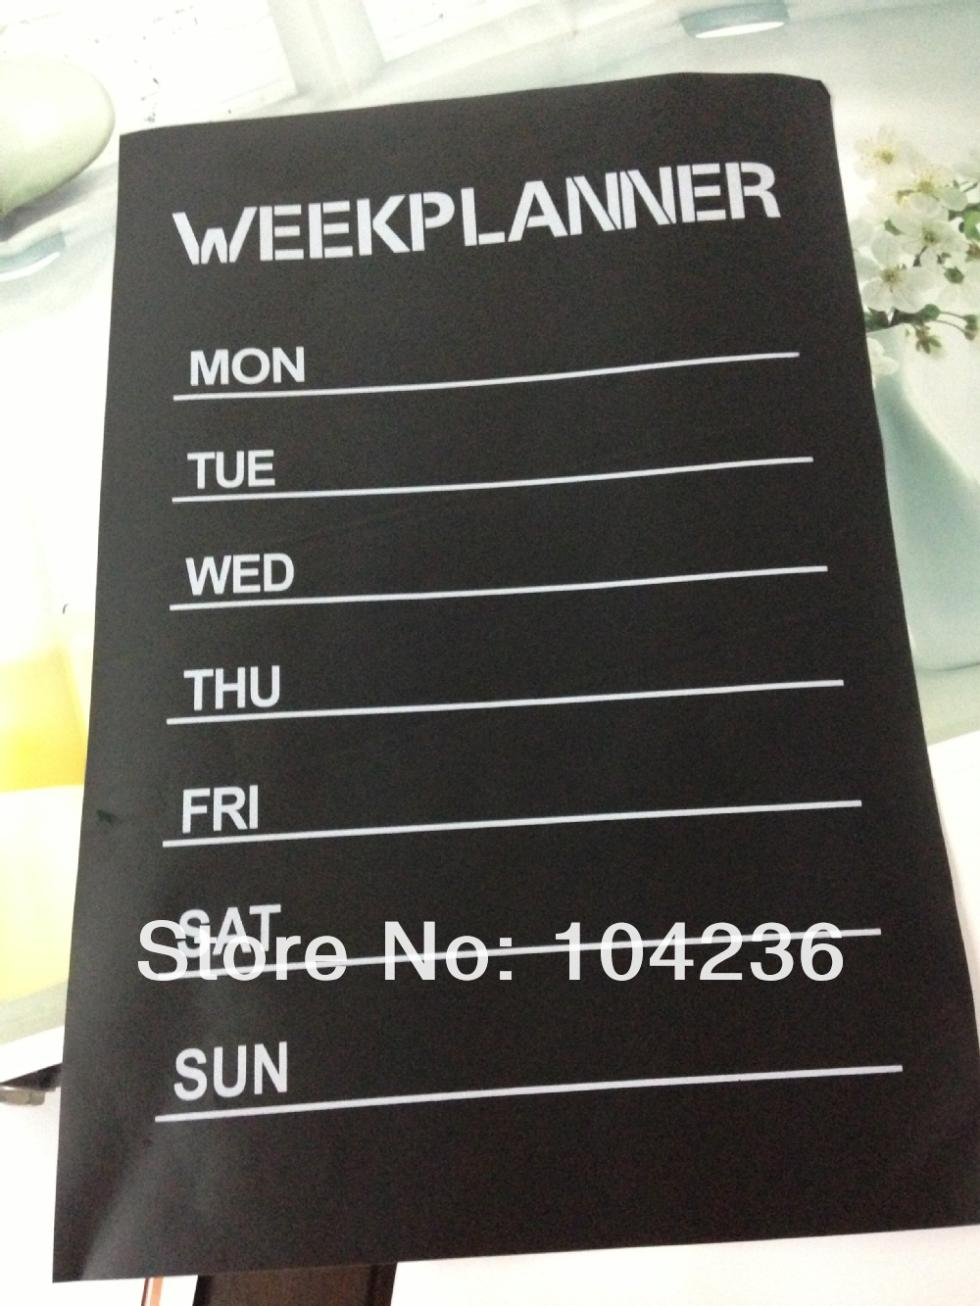 Week Planner Chalkboard Stickers Office Li Room Home Decorations Diy Nursery Note Labels Wall Decals Mural Art